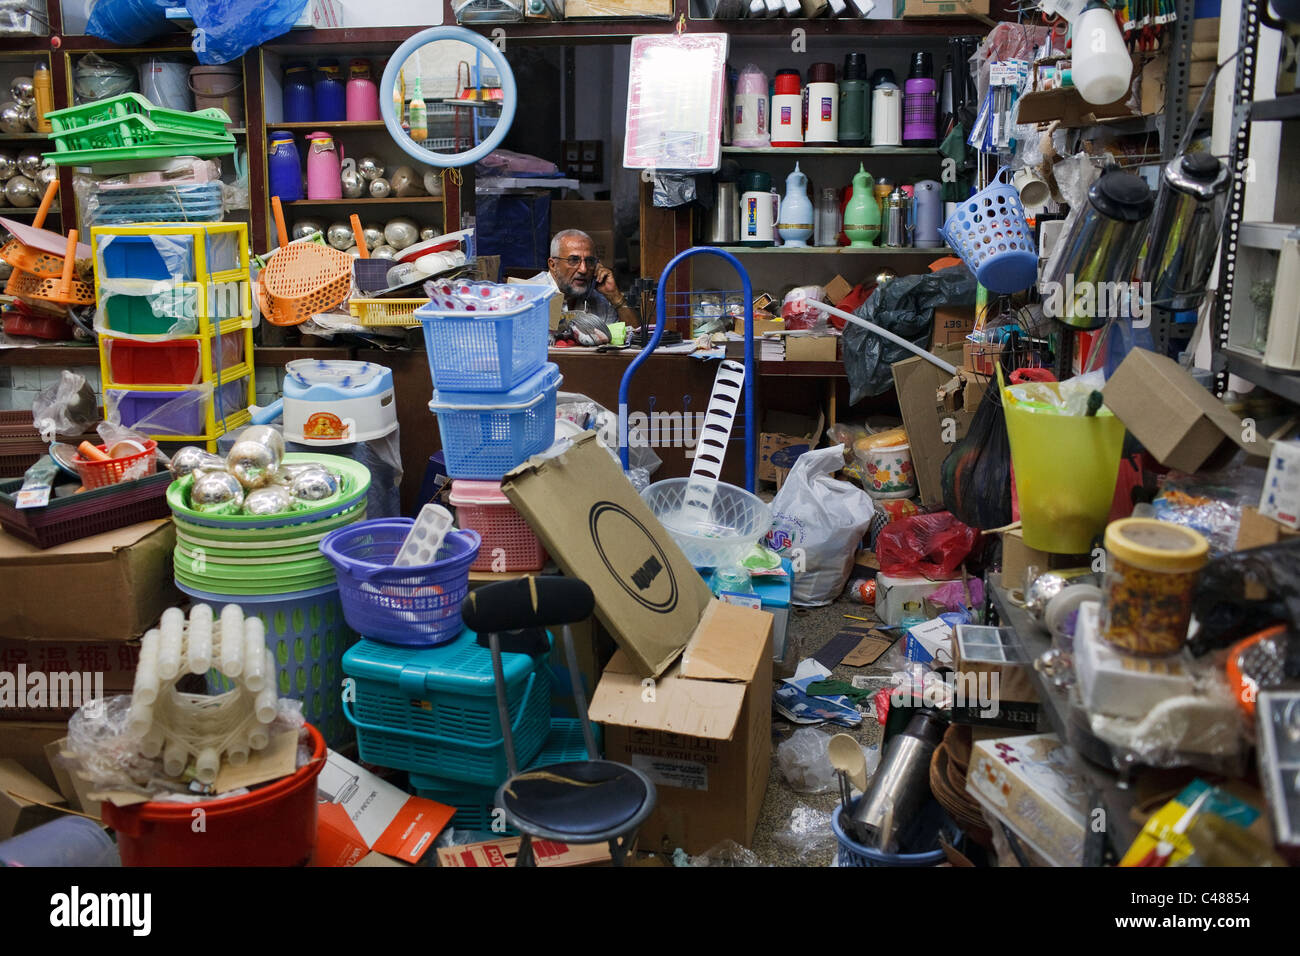 A shopkeeper inside his shop with household goods in Aden, Yemen. - Stock Image